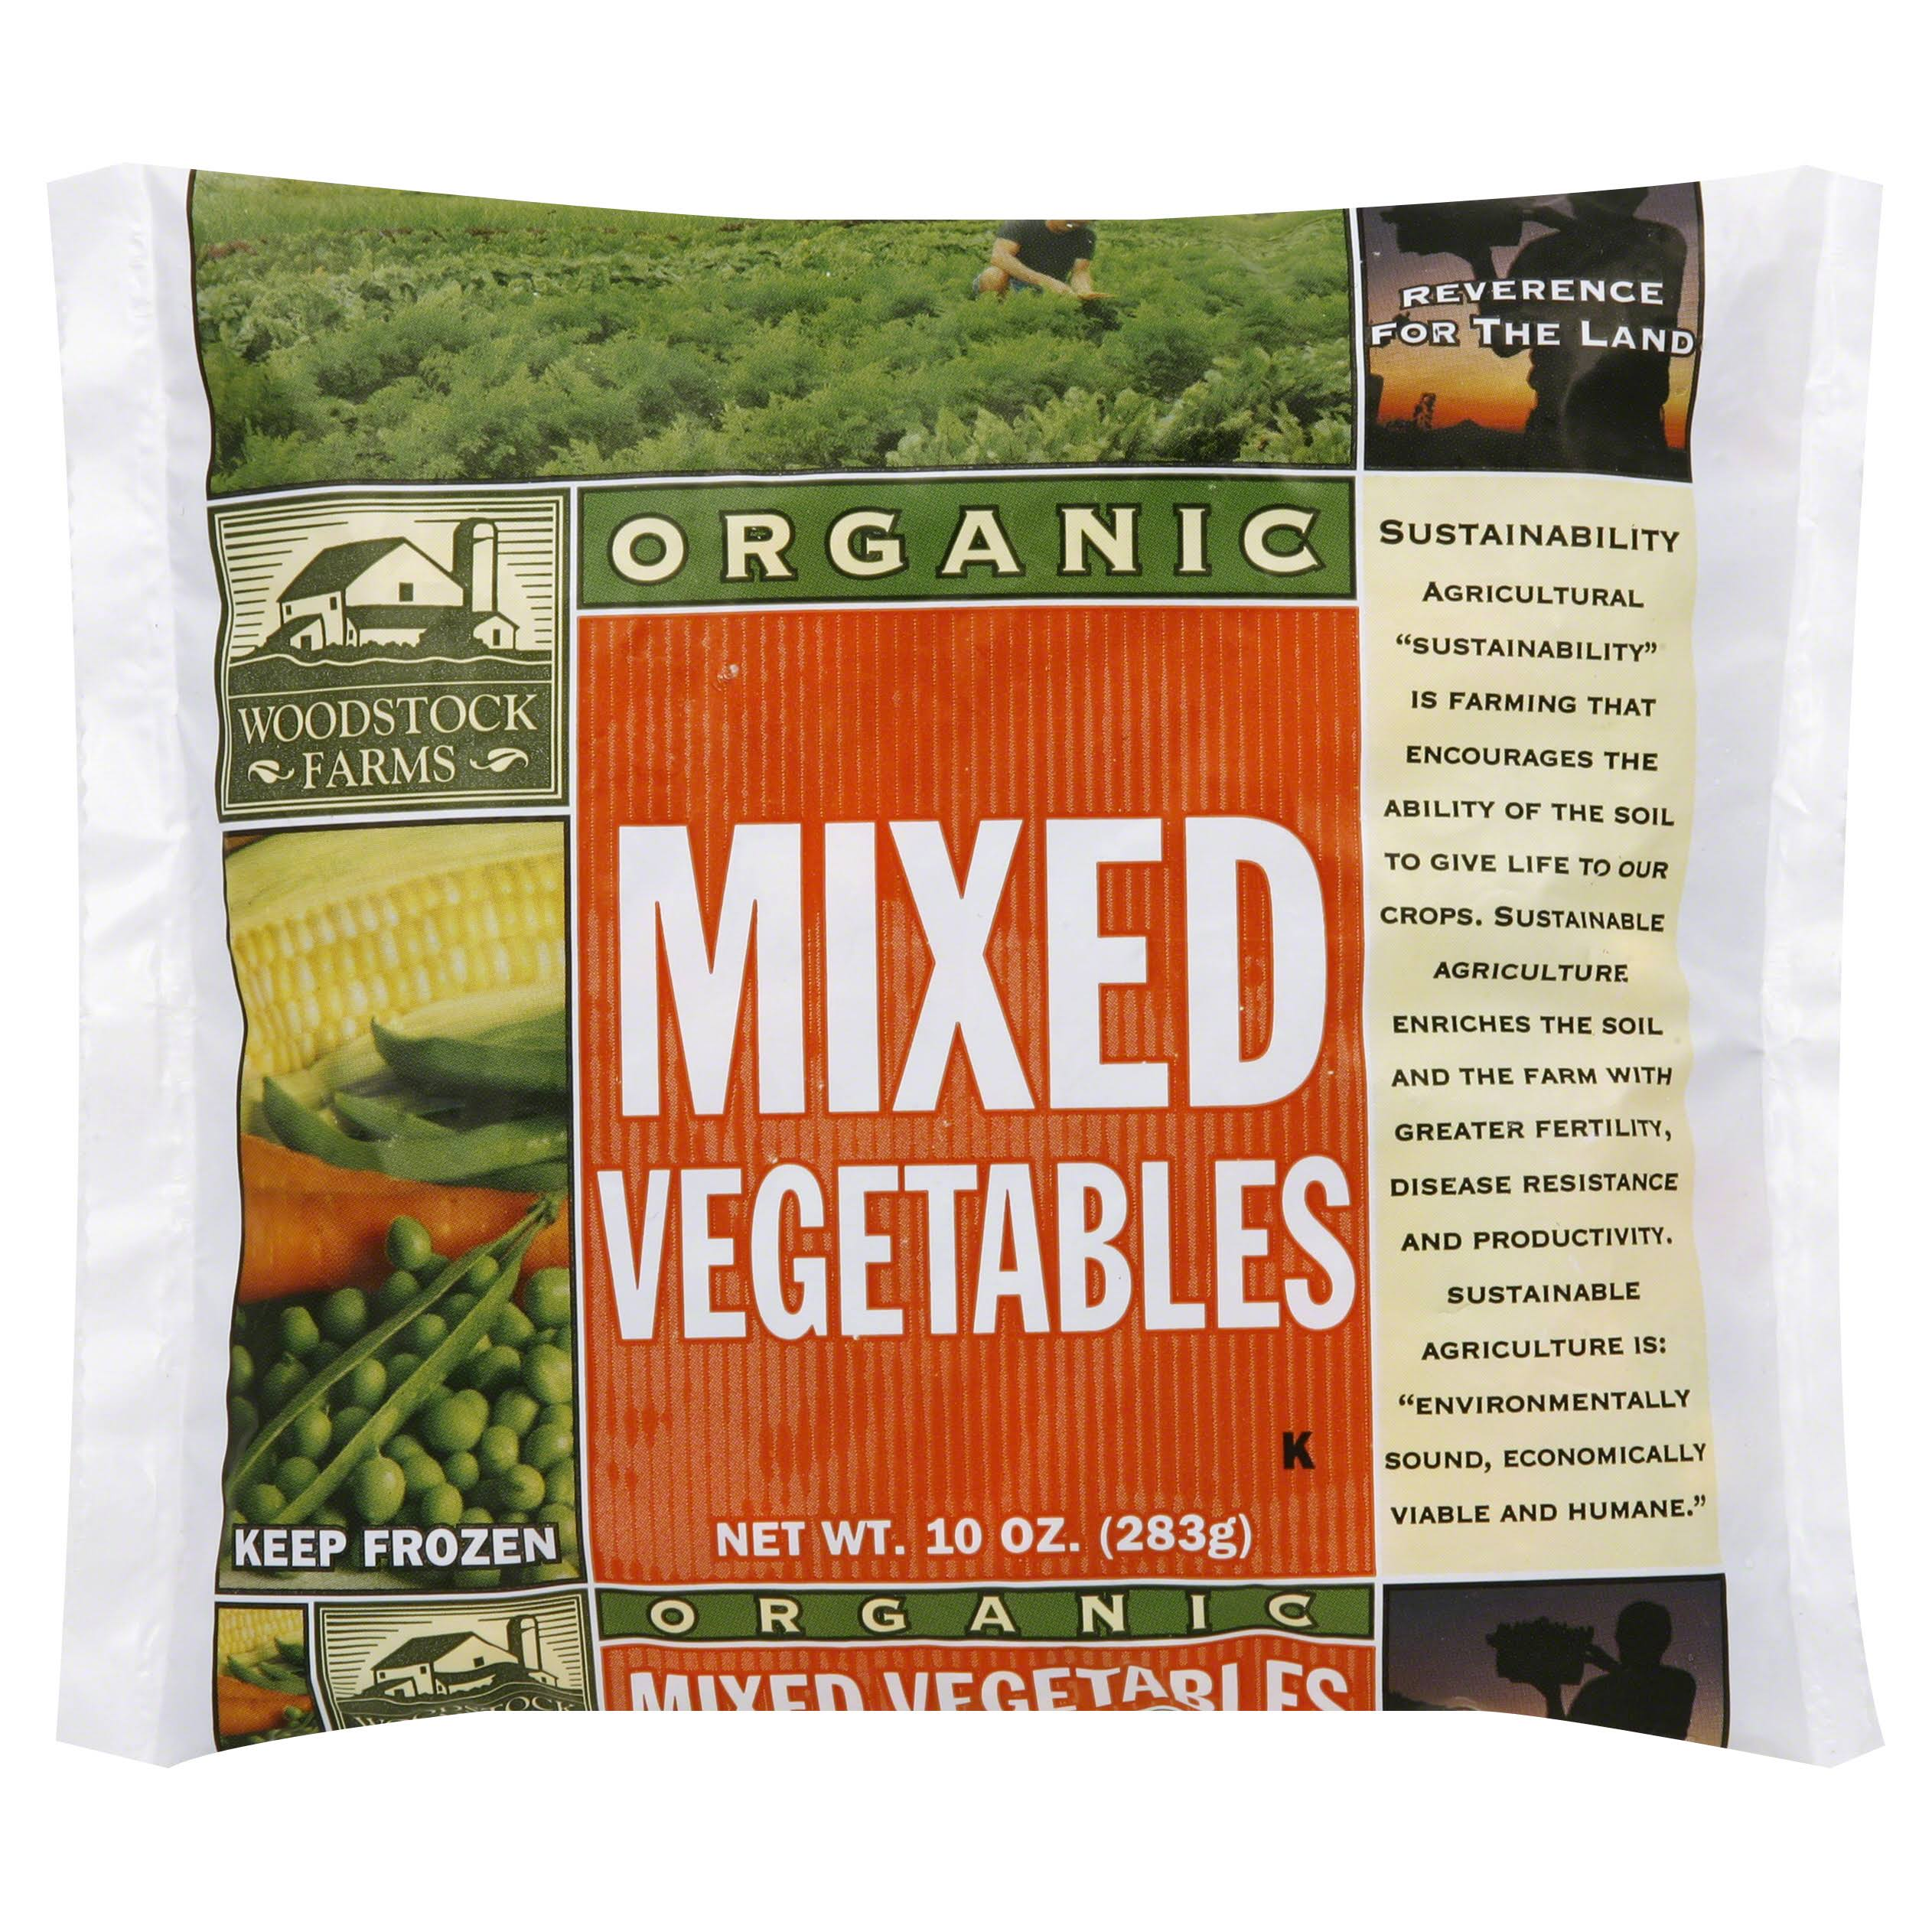 Woodstock Farms Organic Mixed Vegetable - 10oz